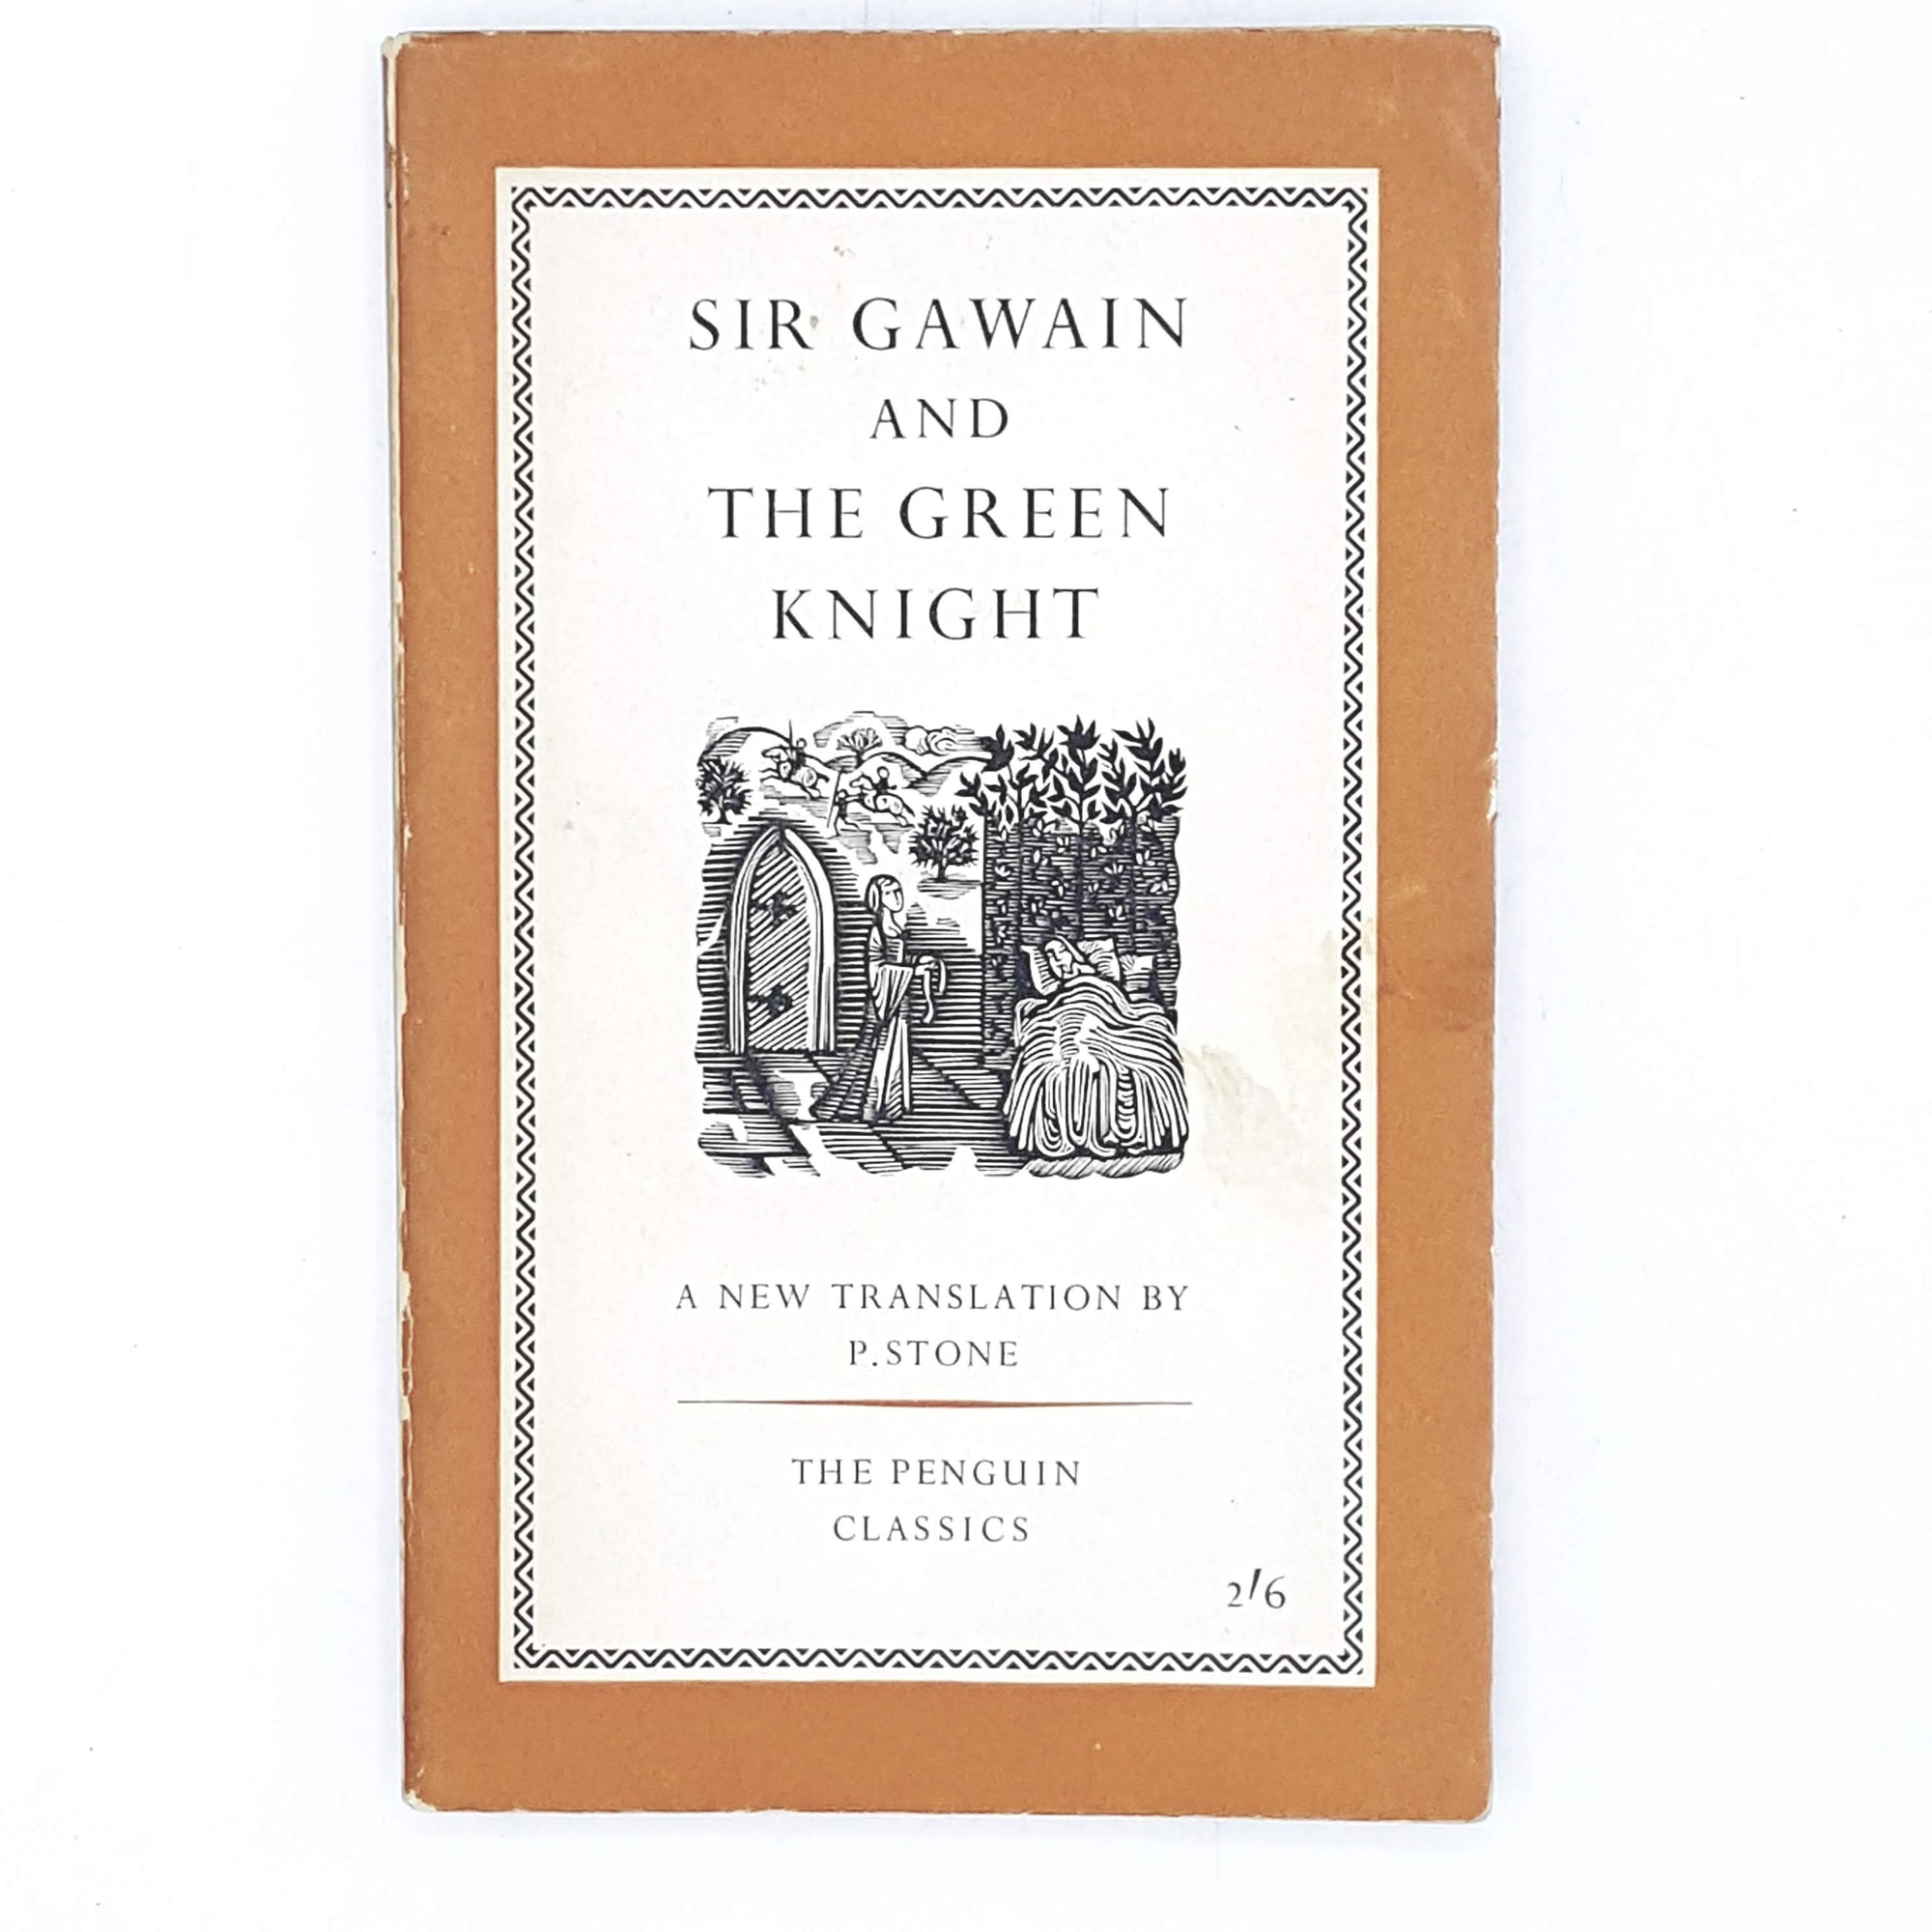 First Edition Penguin Sir Gawain and the Green Knight 1959